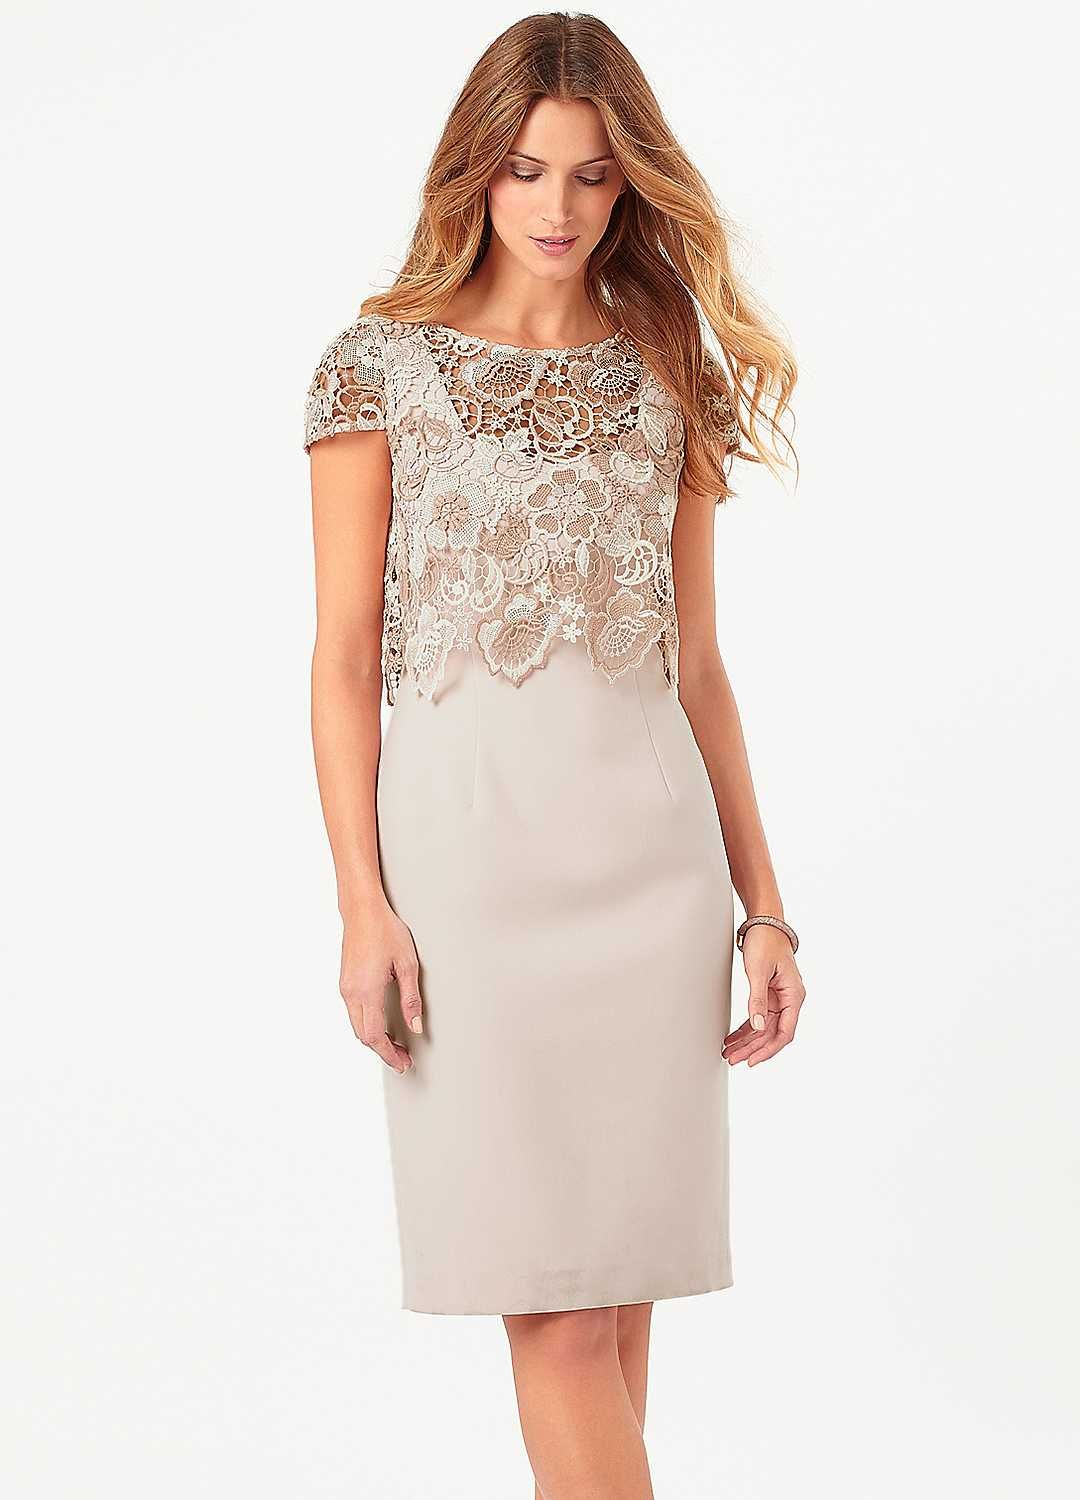 Phase Eight Juno Lace Dress | Janet | Pinterest